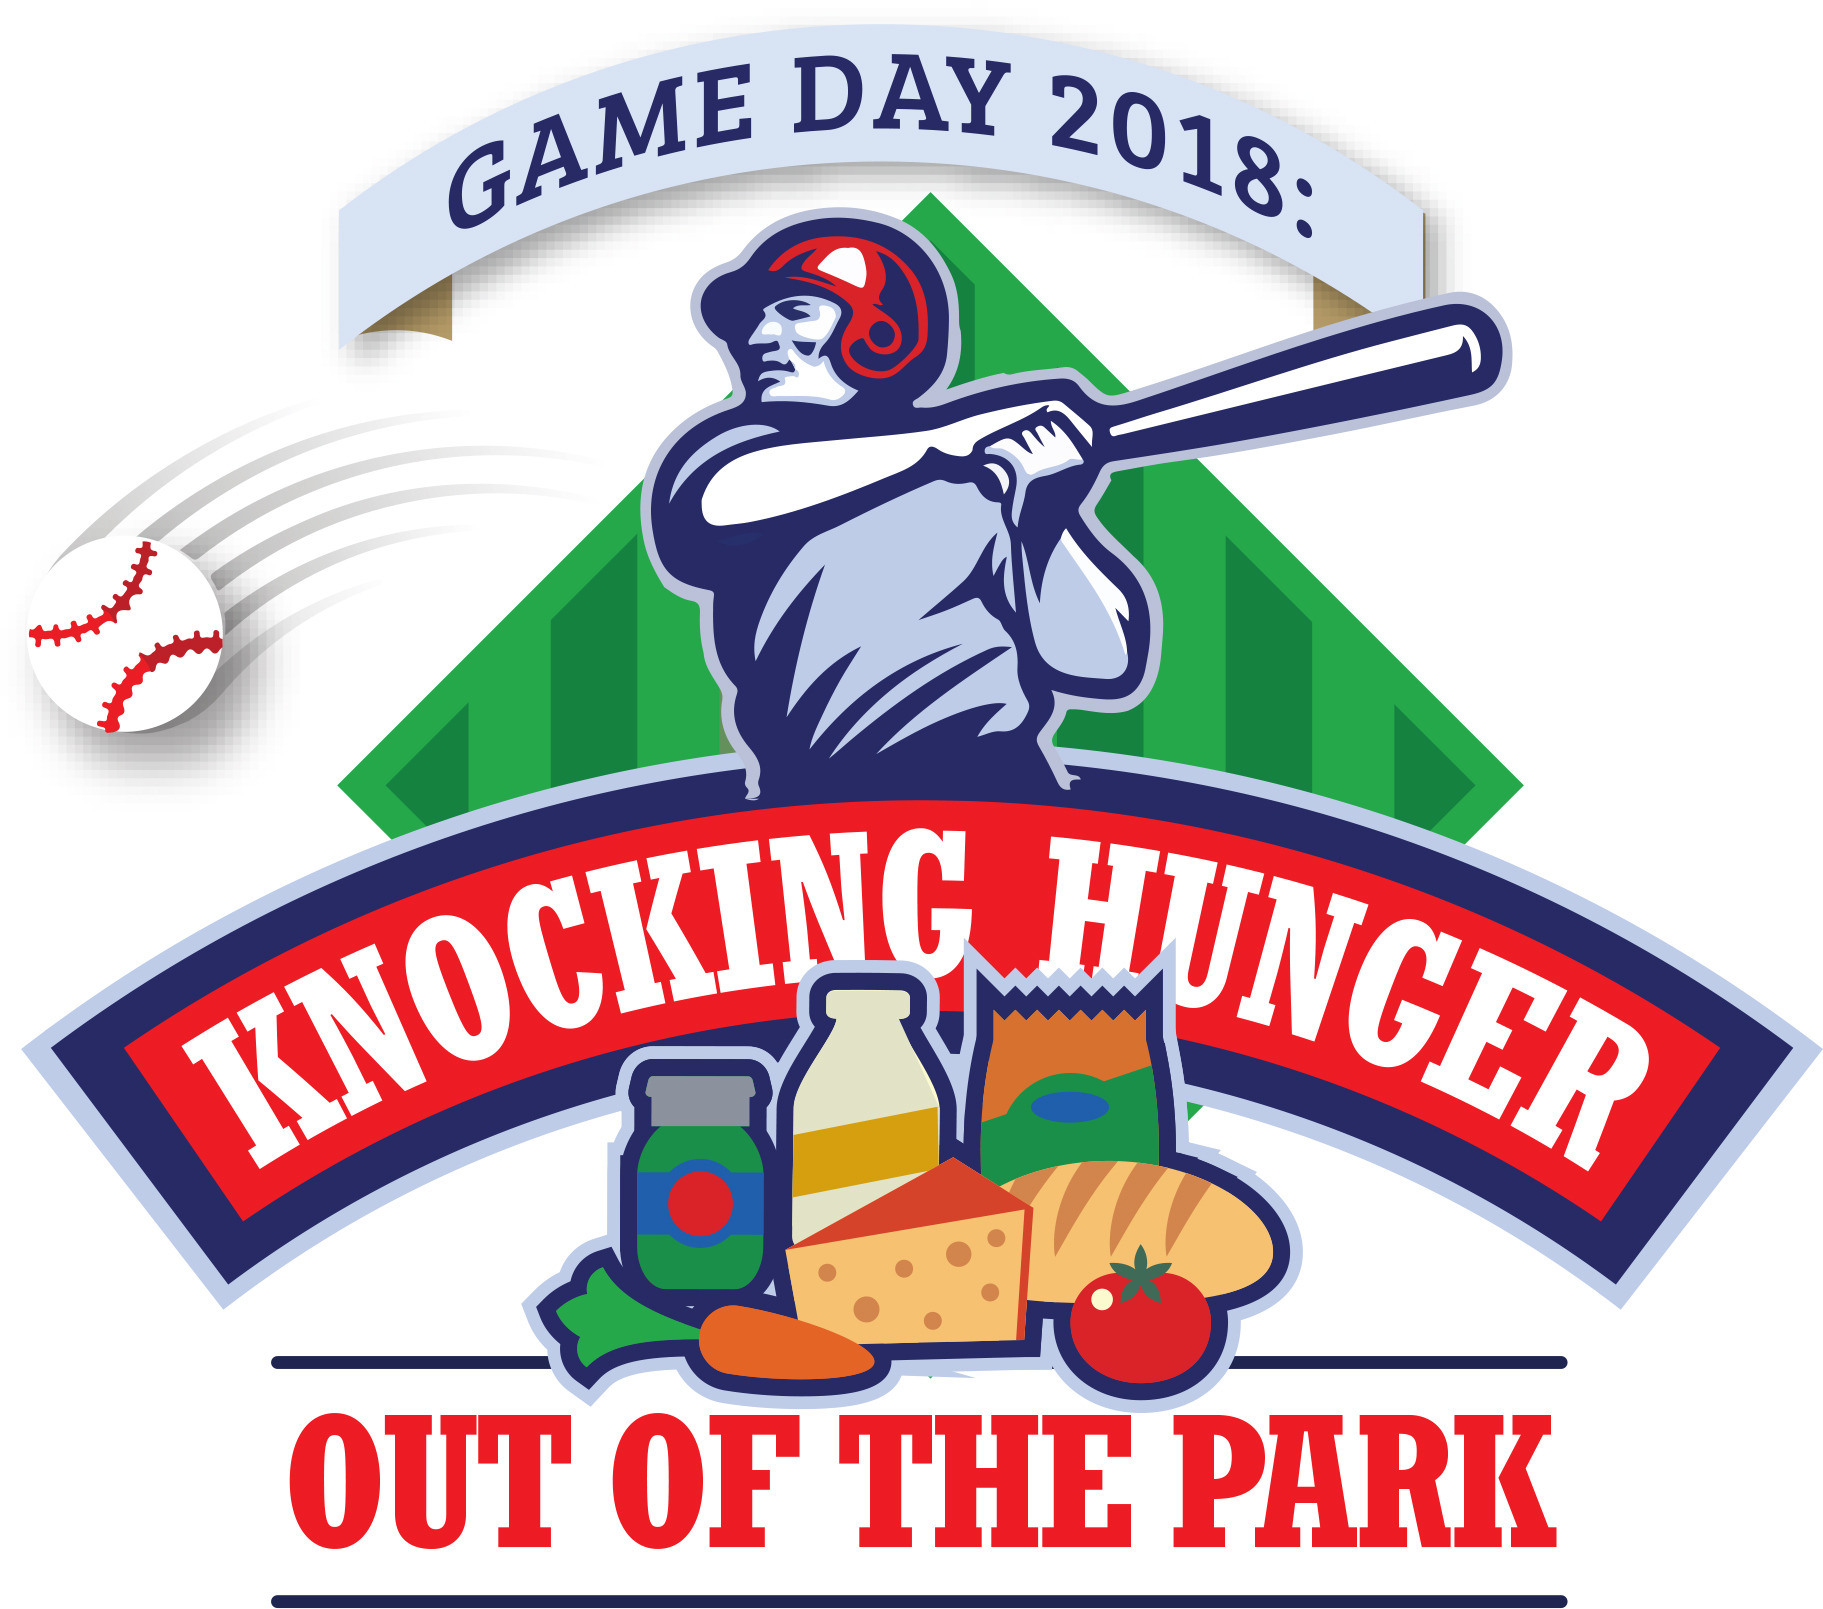 CBIZ knocks hunger out of the park and collects over 1 million pounds of food in annual Food Drive